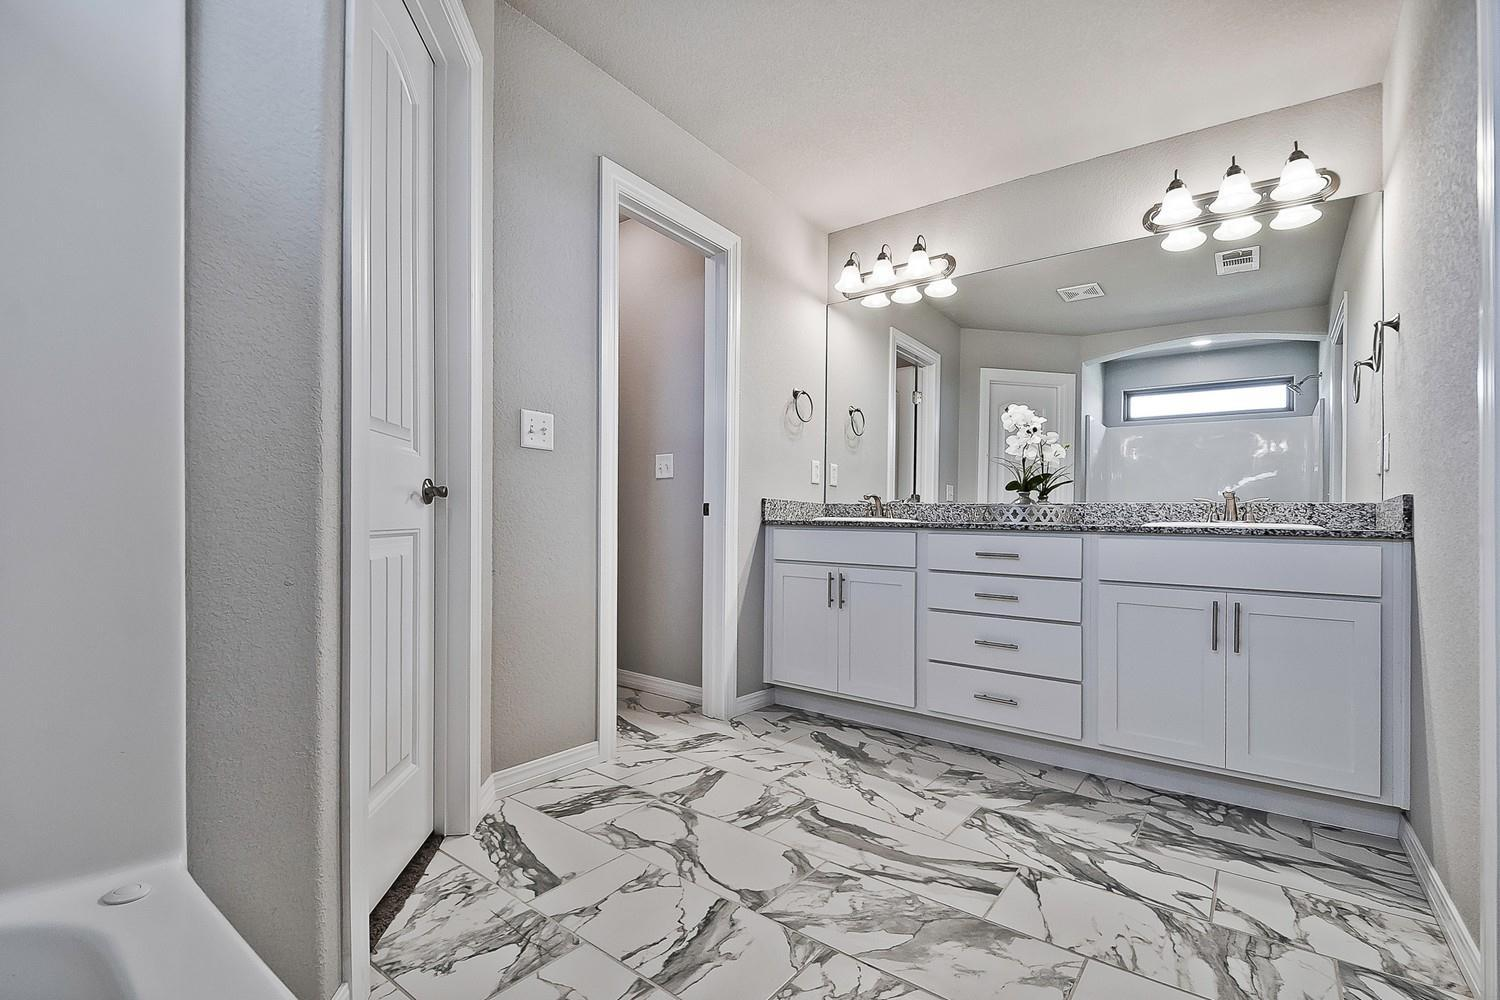 Bathroom featured in the 1463 By Riverwood Homes - Arkansas in Fayetteville, AR